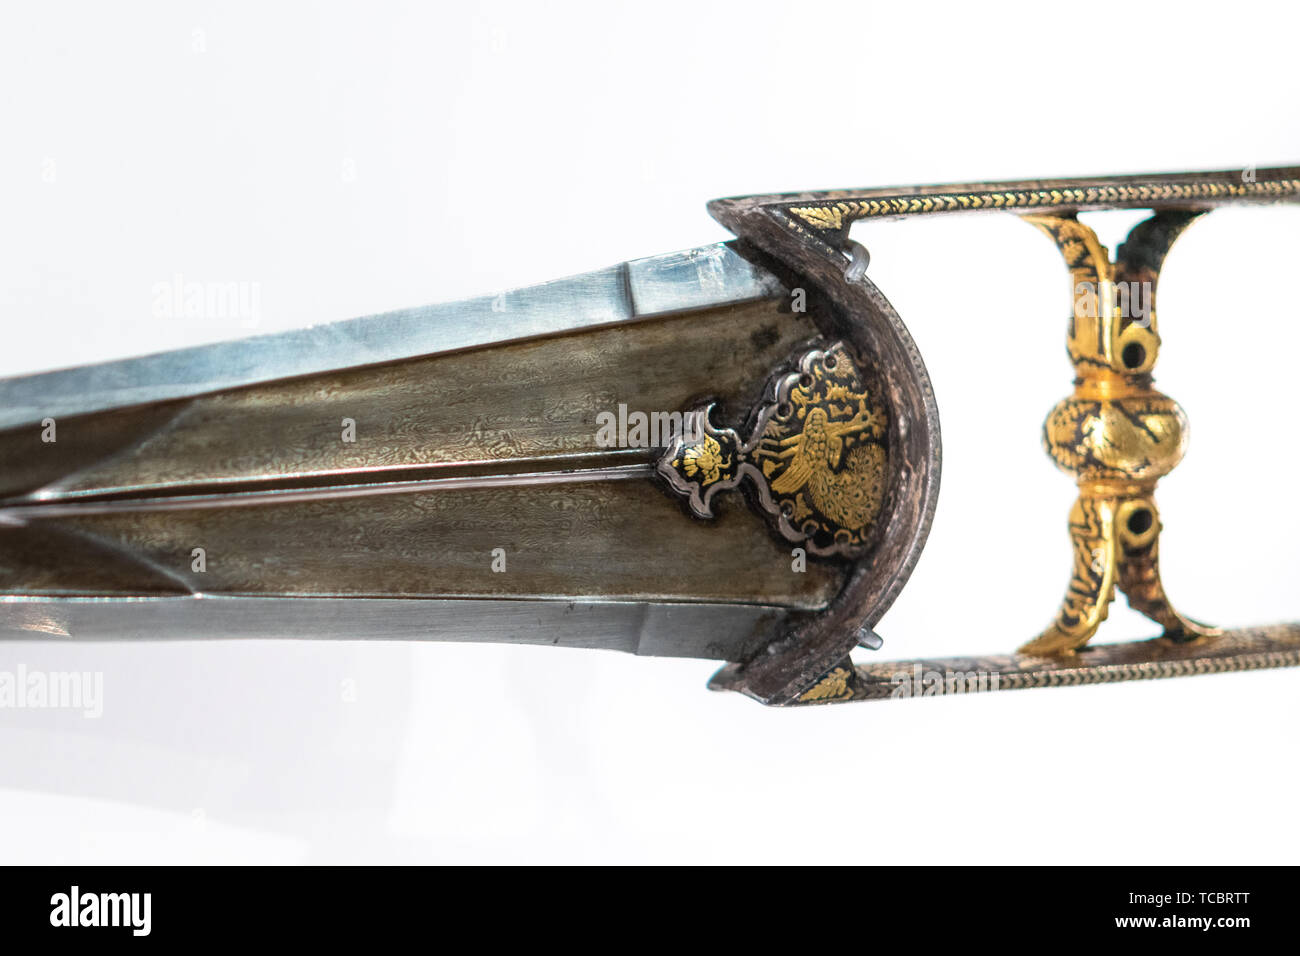 Punch dagger which was a traditional weapon in India. Exhibit 'Treasures of a Desert Kingdom: The Royal Arts of Jodhpur' in the Royal Ontario Museum - Stock Image